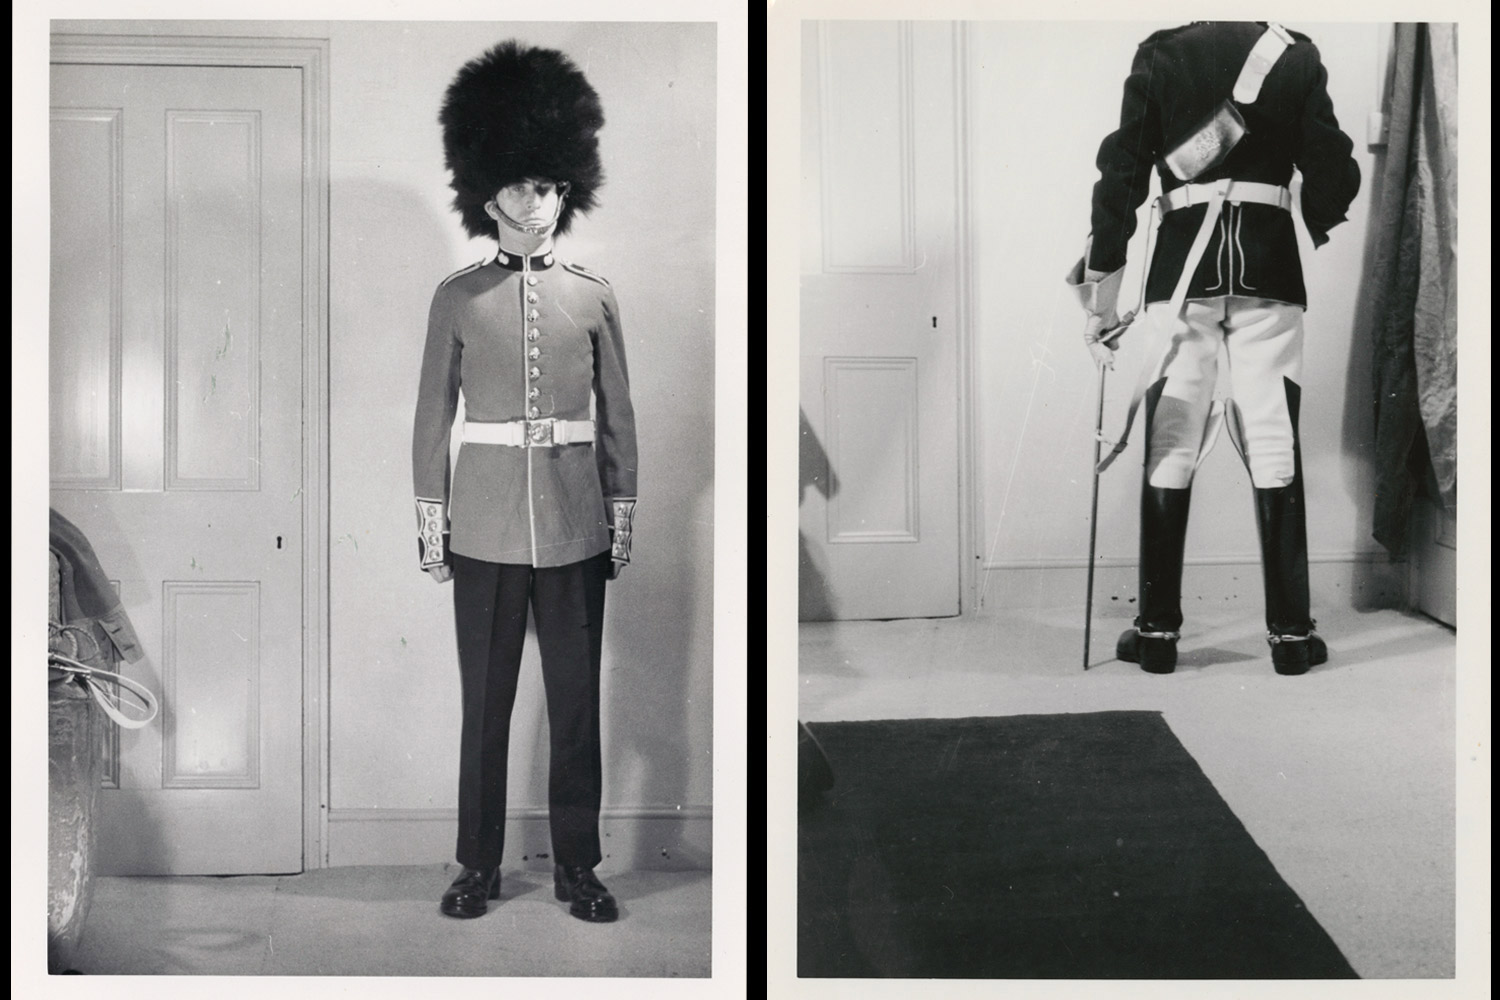 Images from an archive of the Royal Horse Artillery, silver gelatin print, UK, 1960's